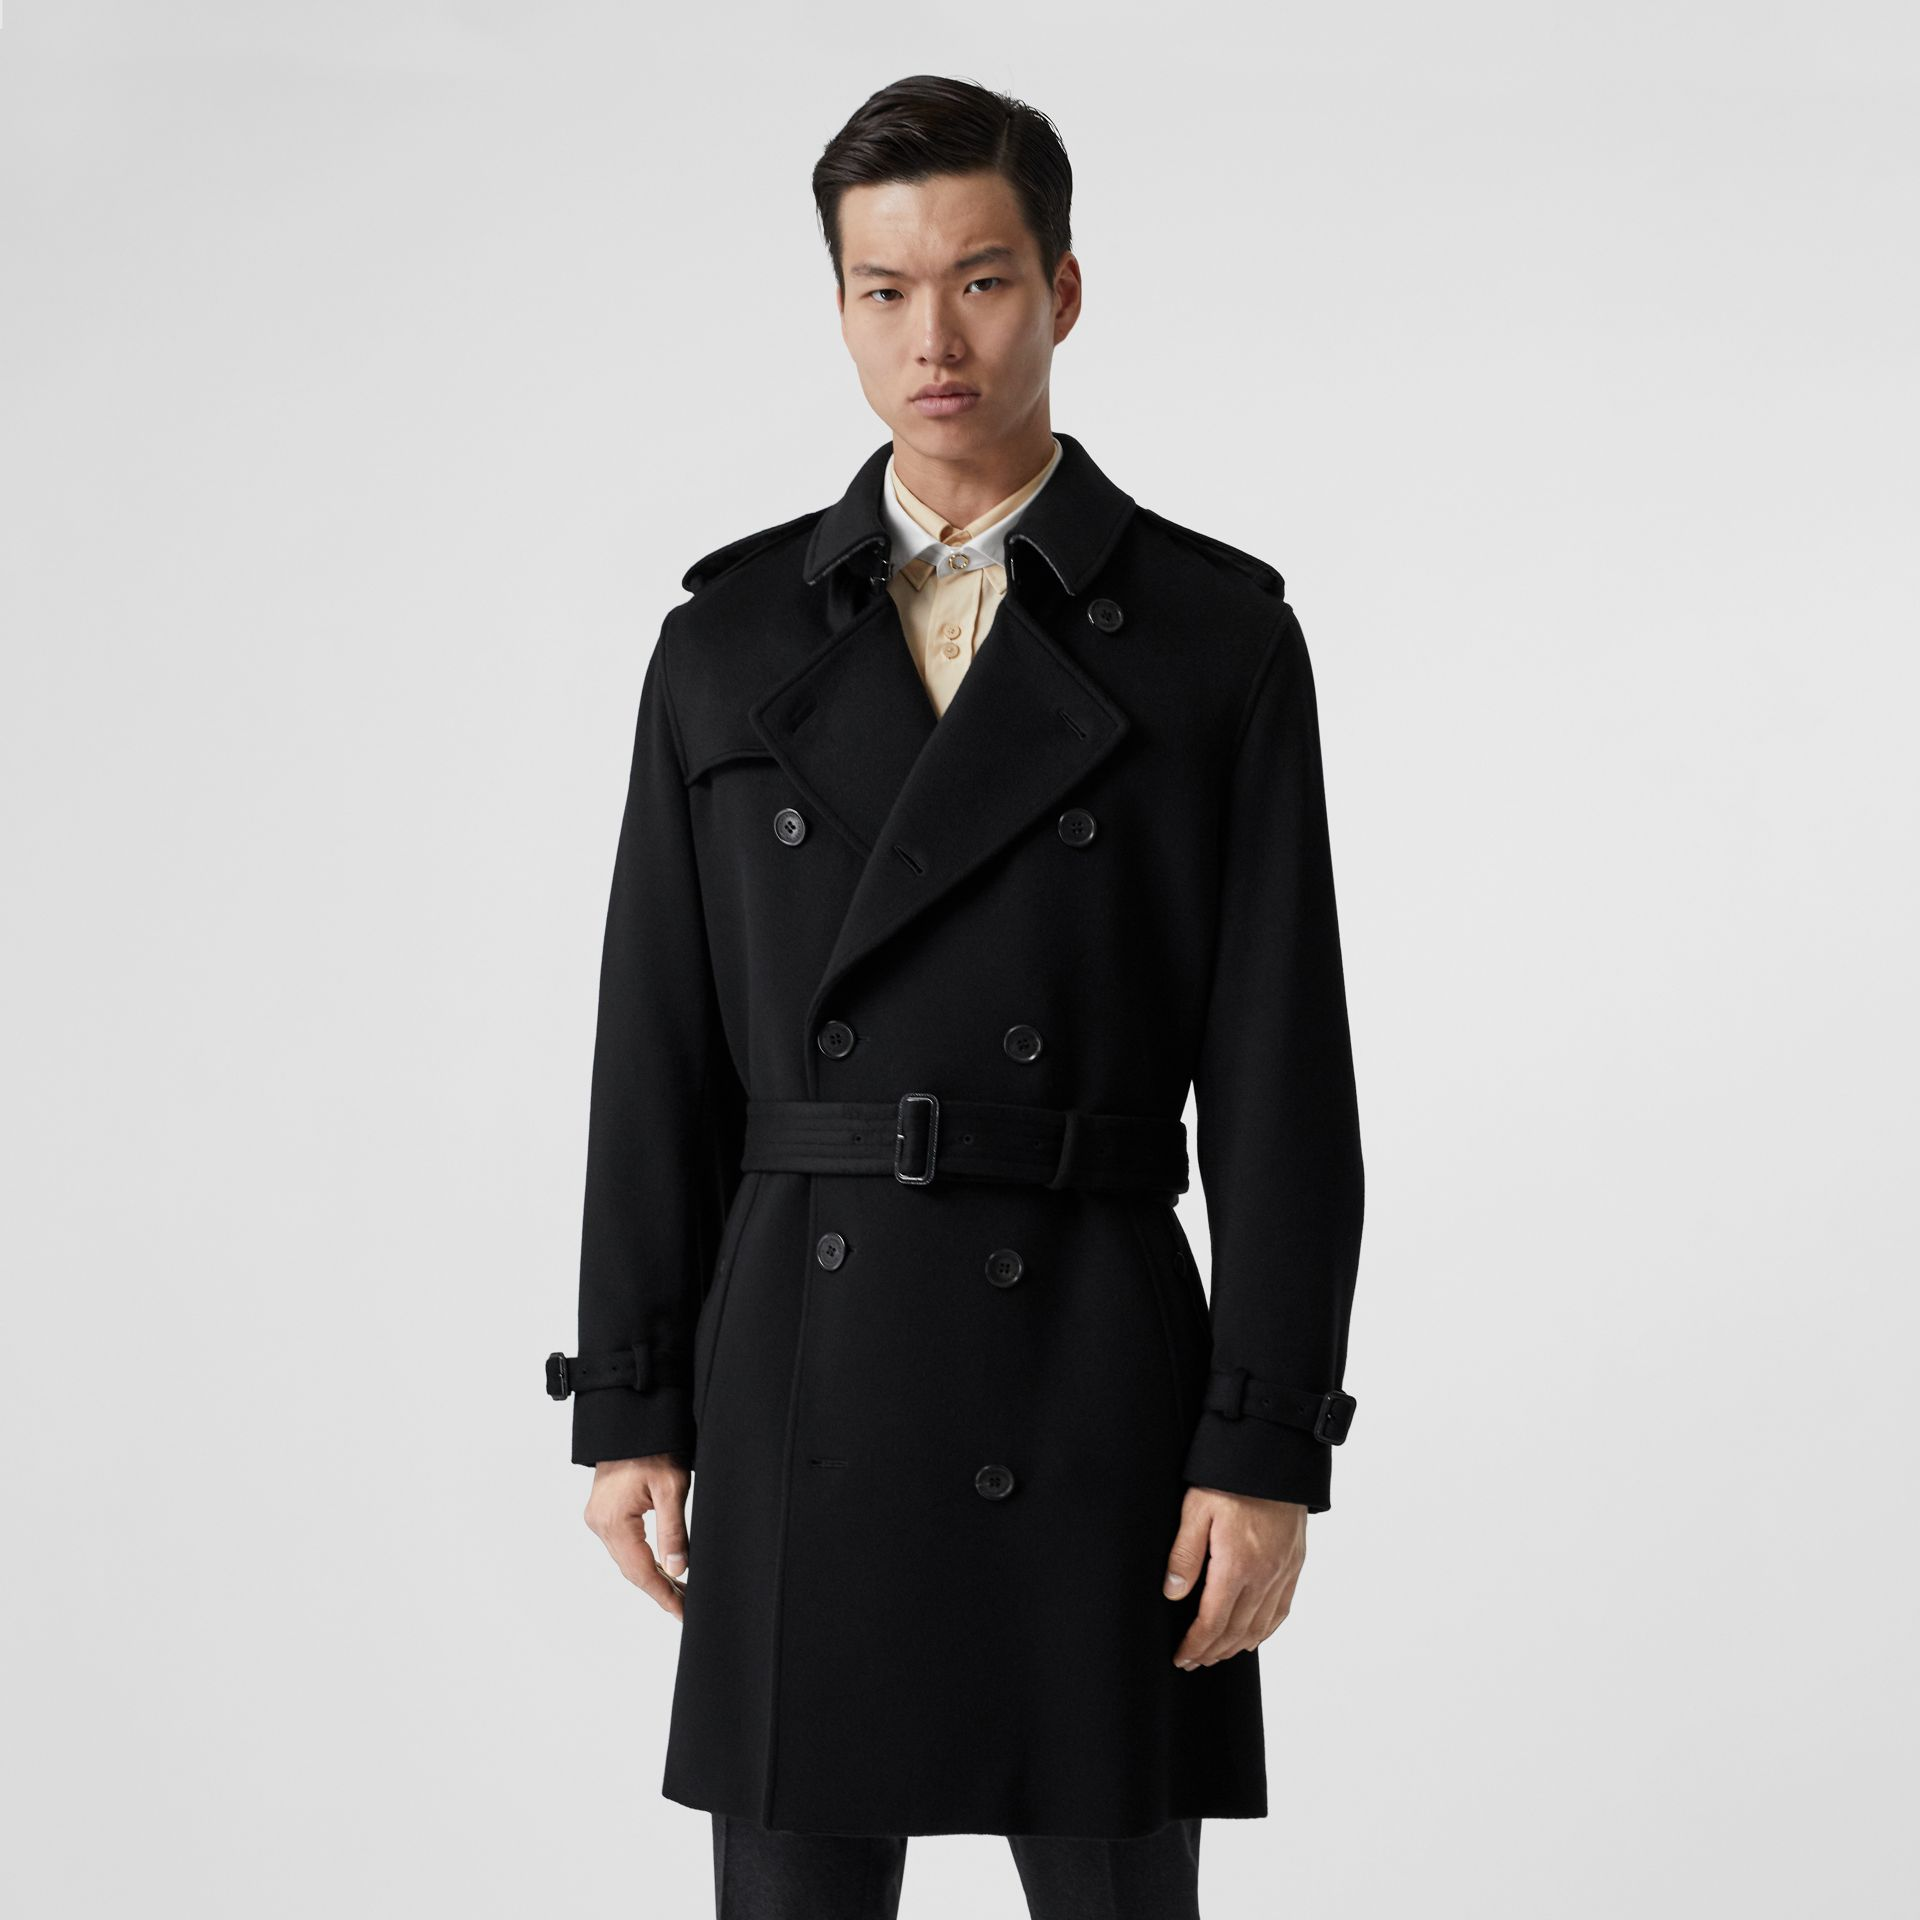 Cashmere Trench Coat in Black - Men | Burberry Australia - gallery image 6